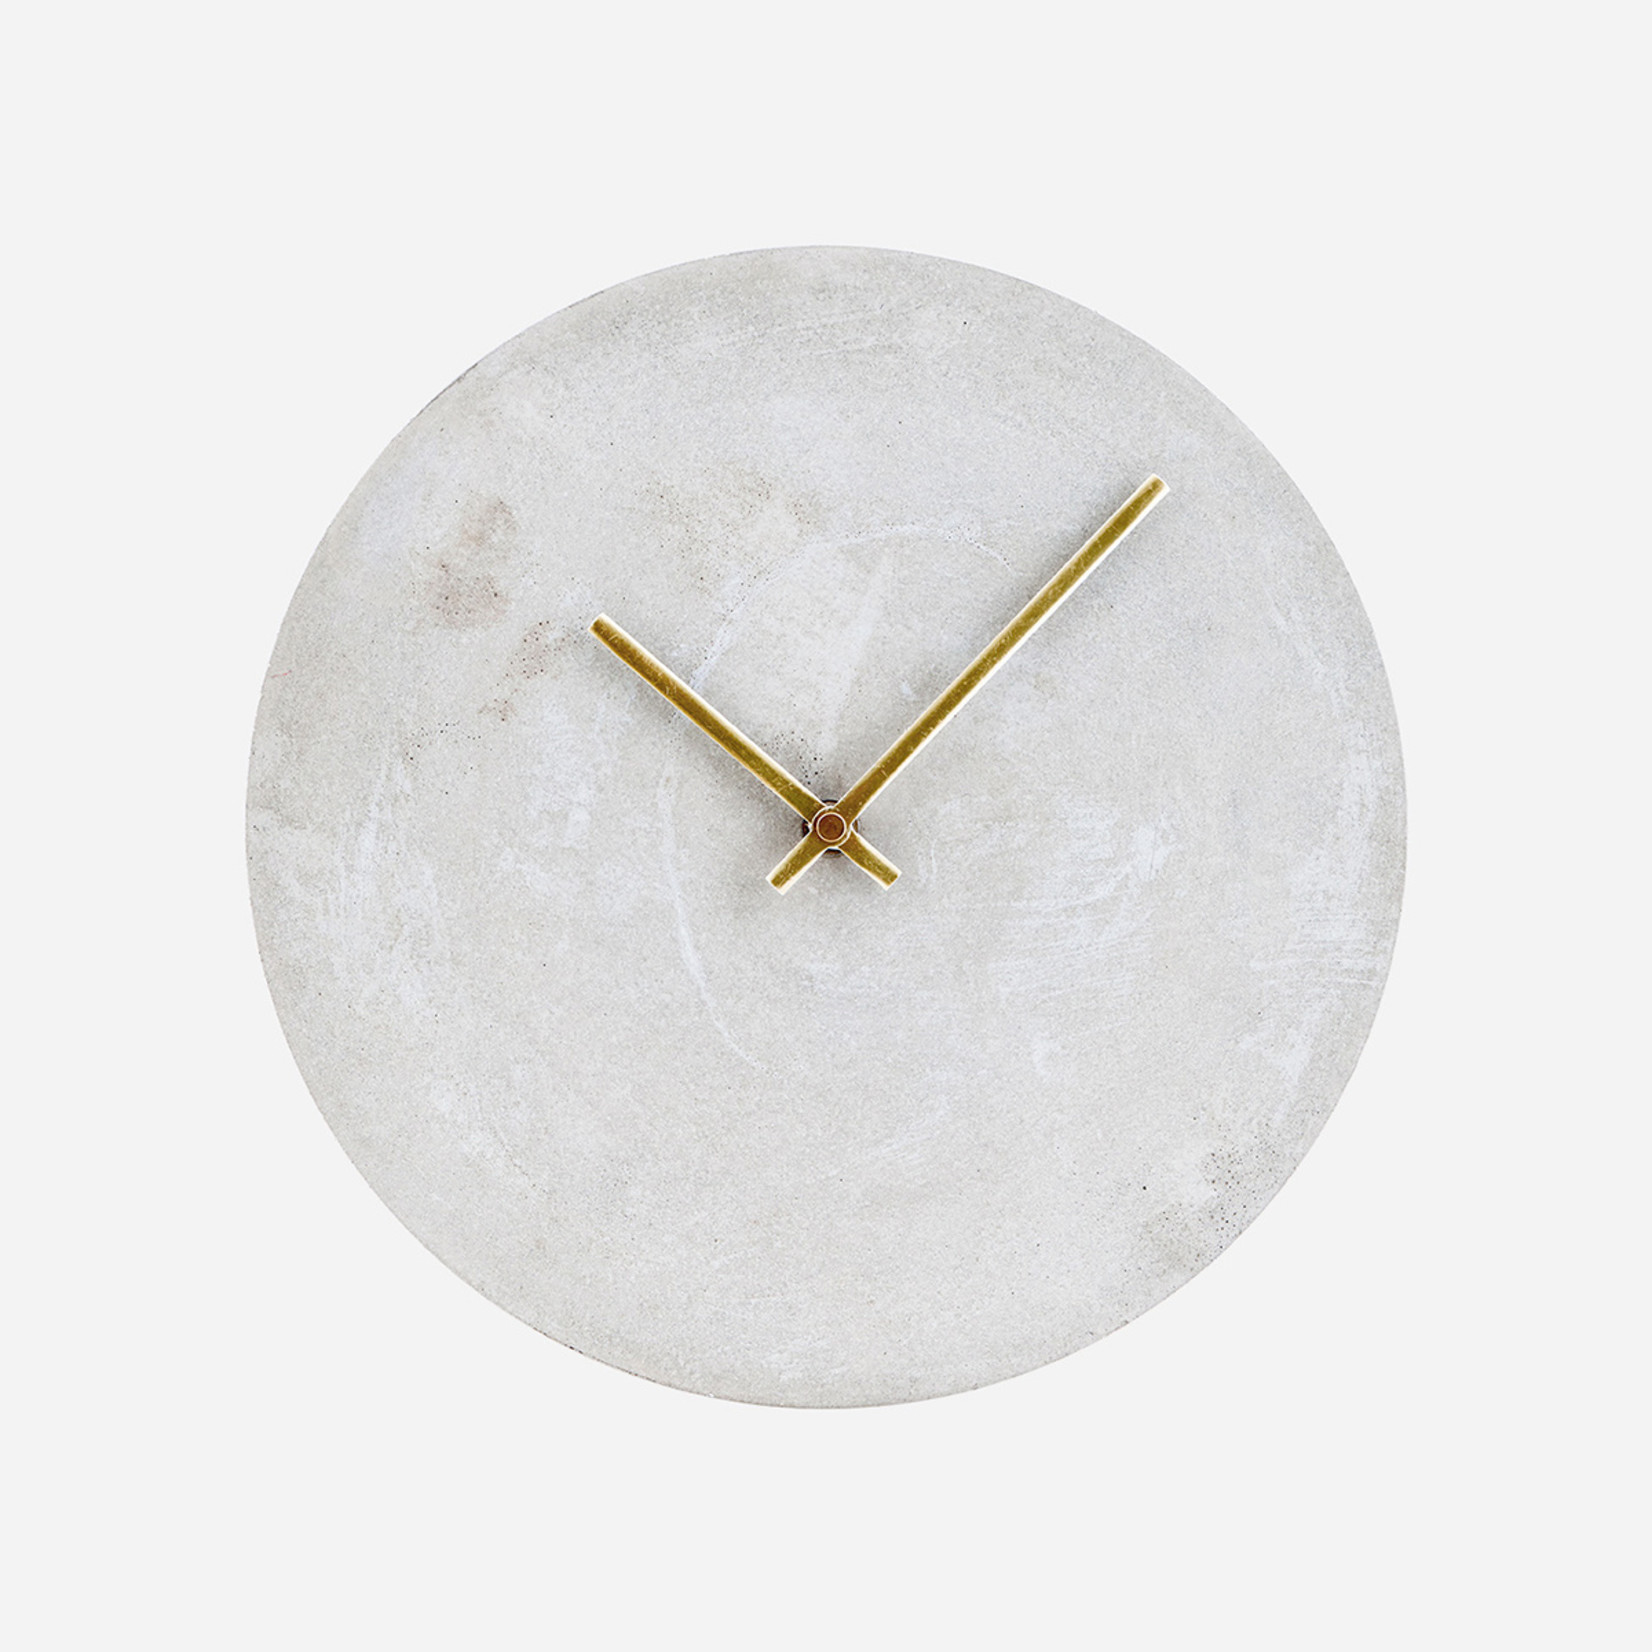 House Doctor House Doctor, Wall clock, Watch, Concrete